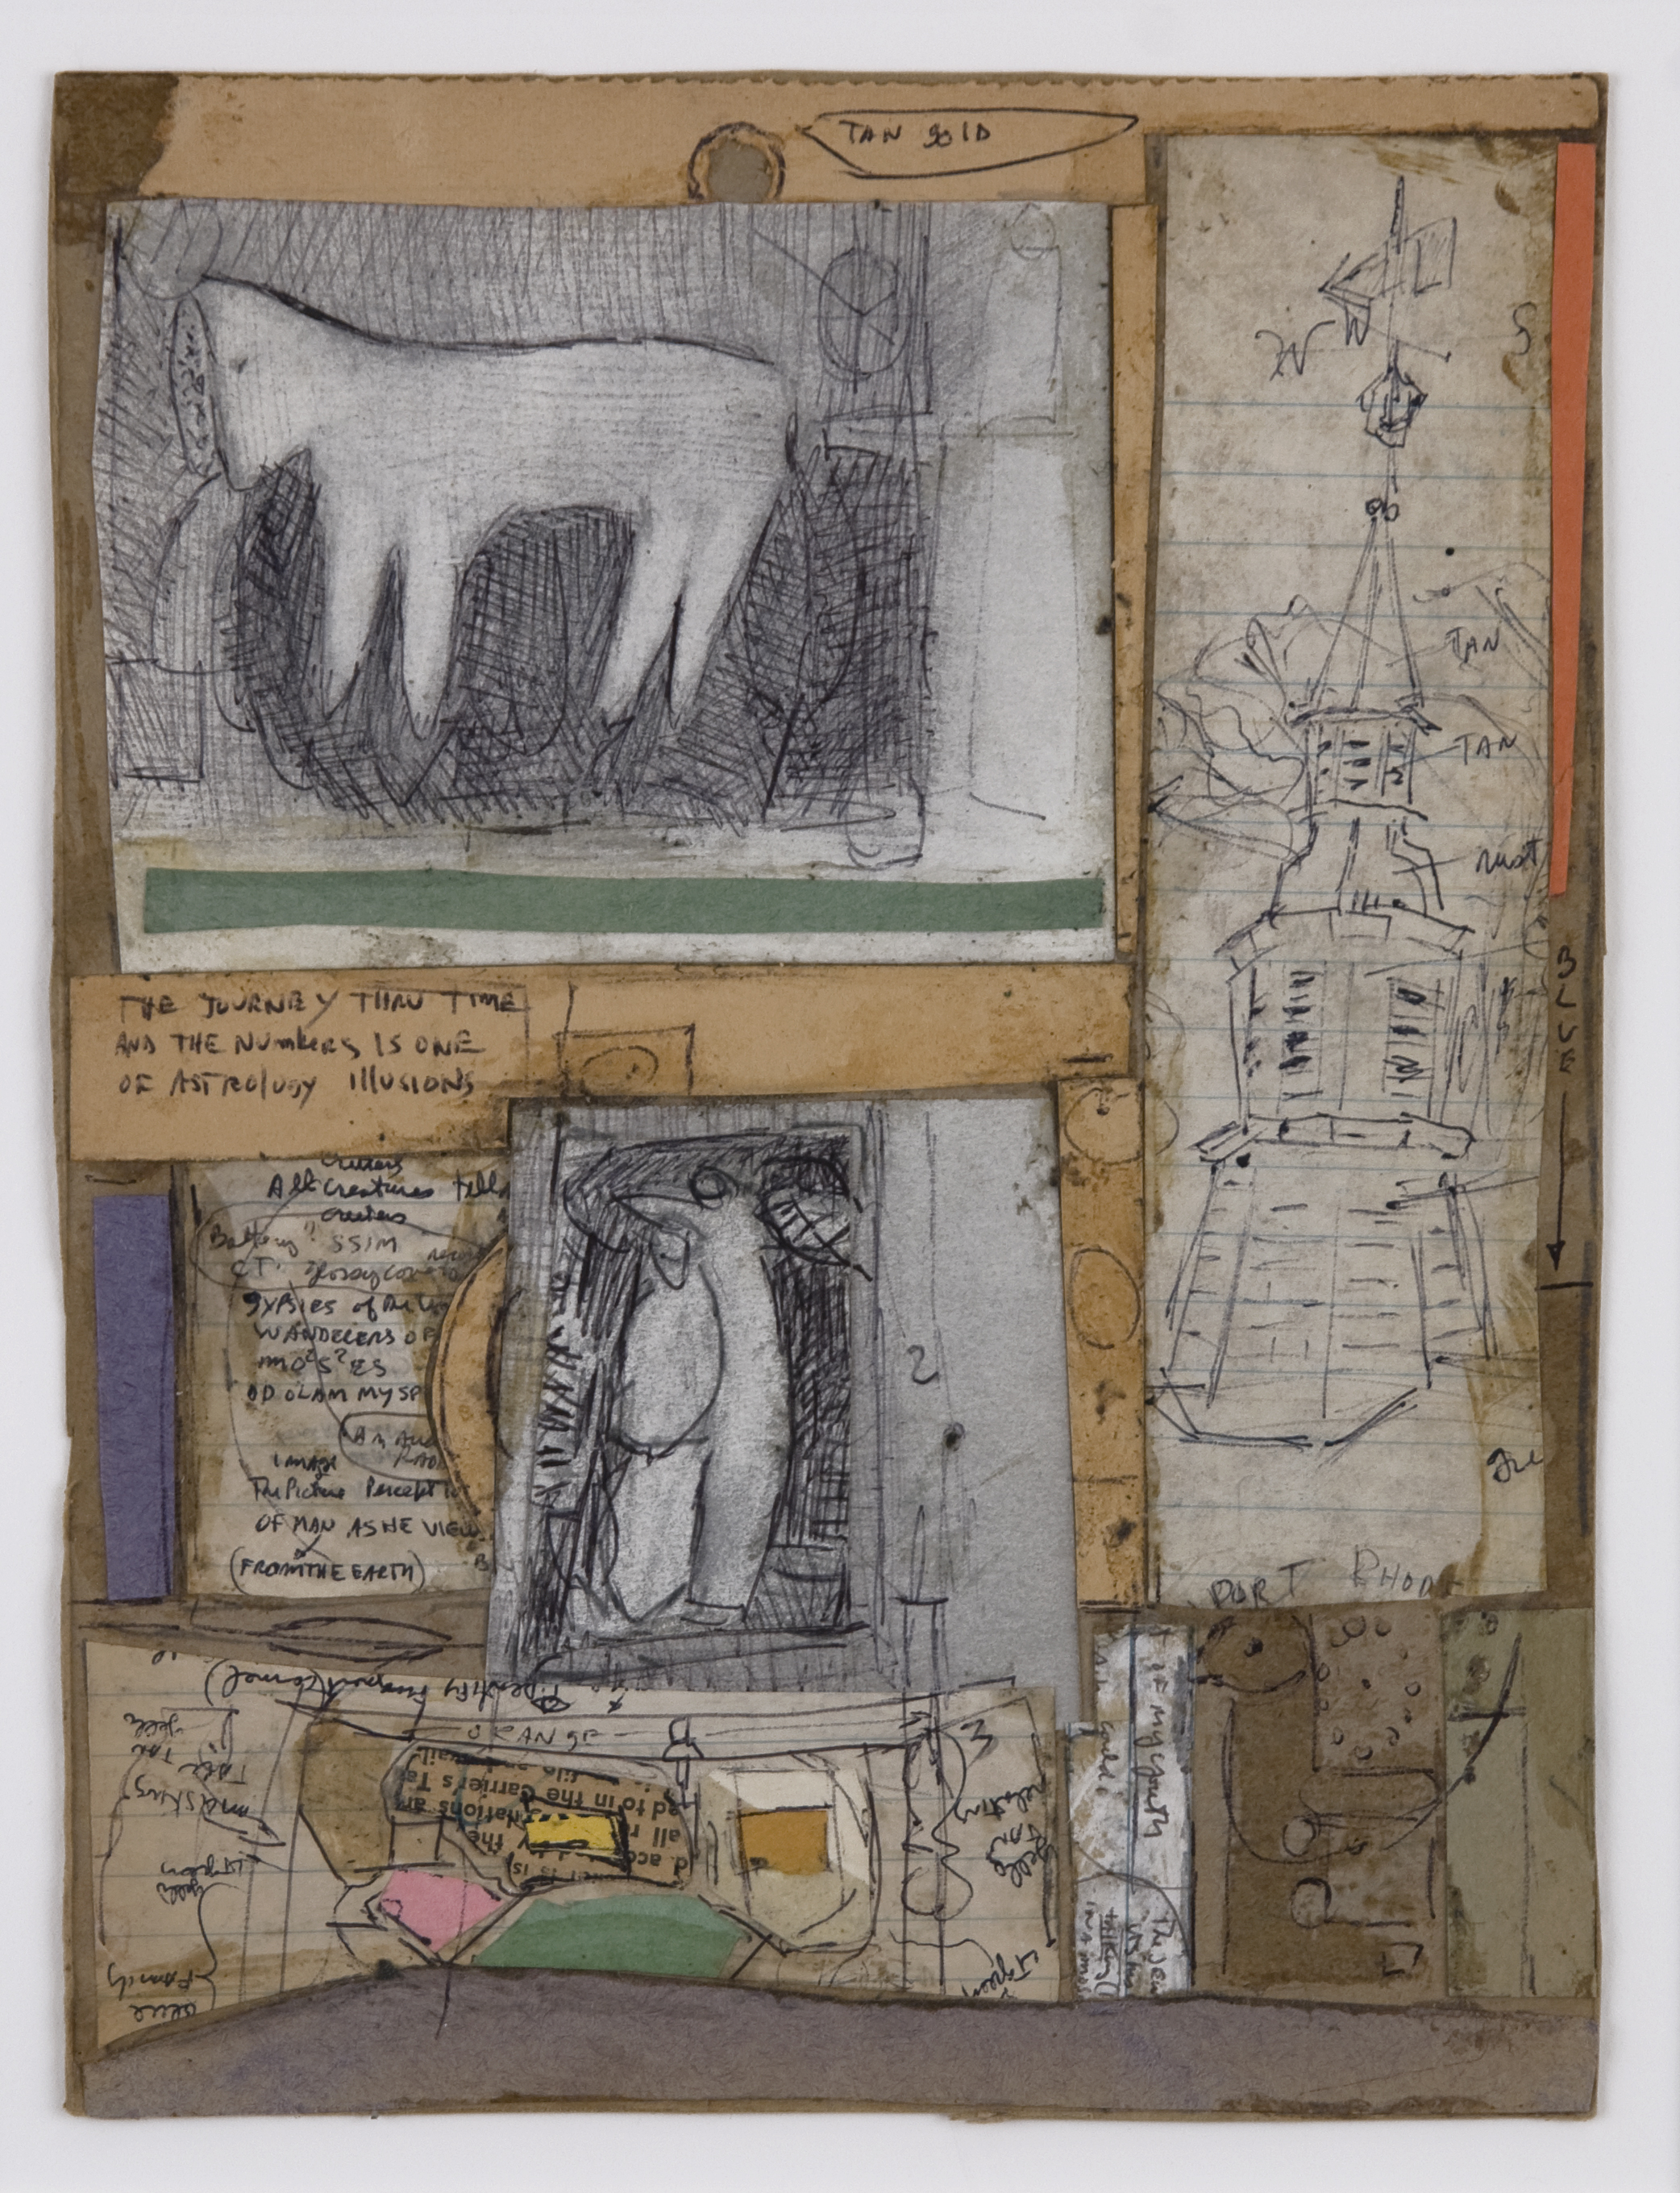 Jerry Wagner    Tan Gold  , c.1990s Mixed media, collage/paper 8.25 x 6.25 inches / 21 x 15.9 cm / JWa 8